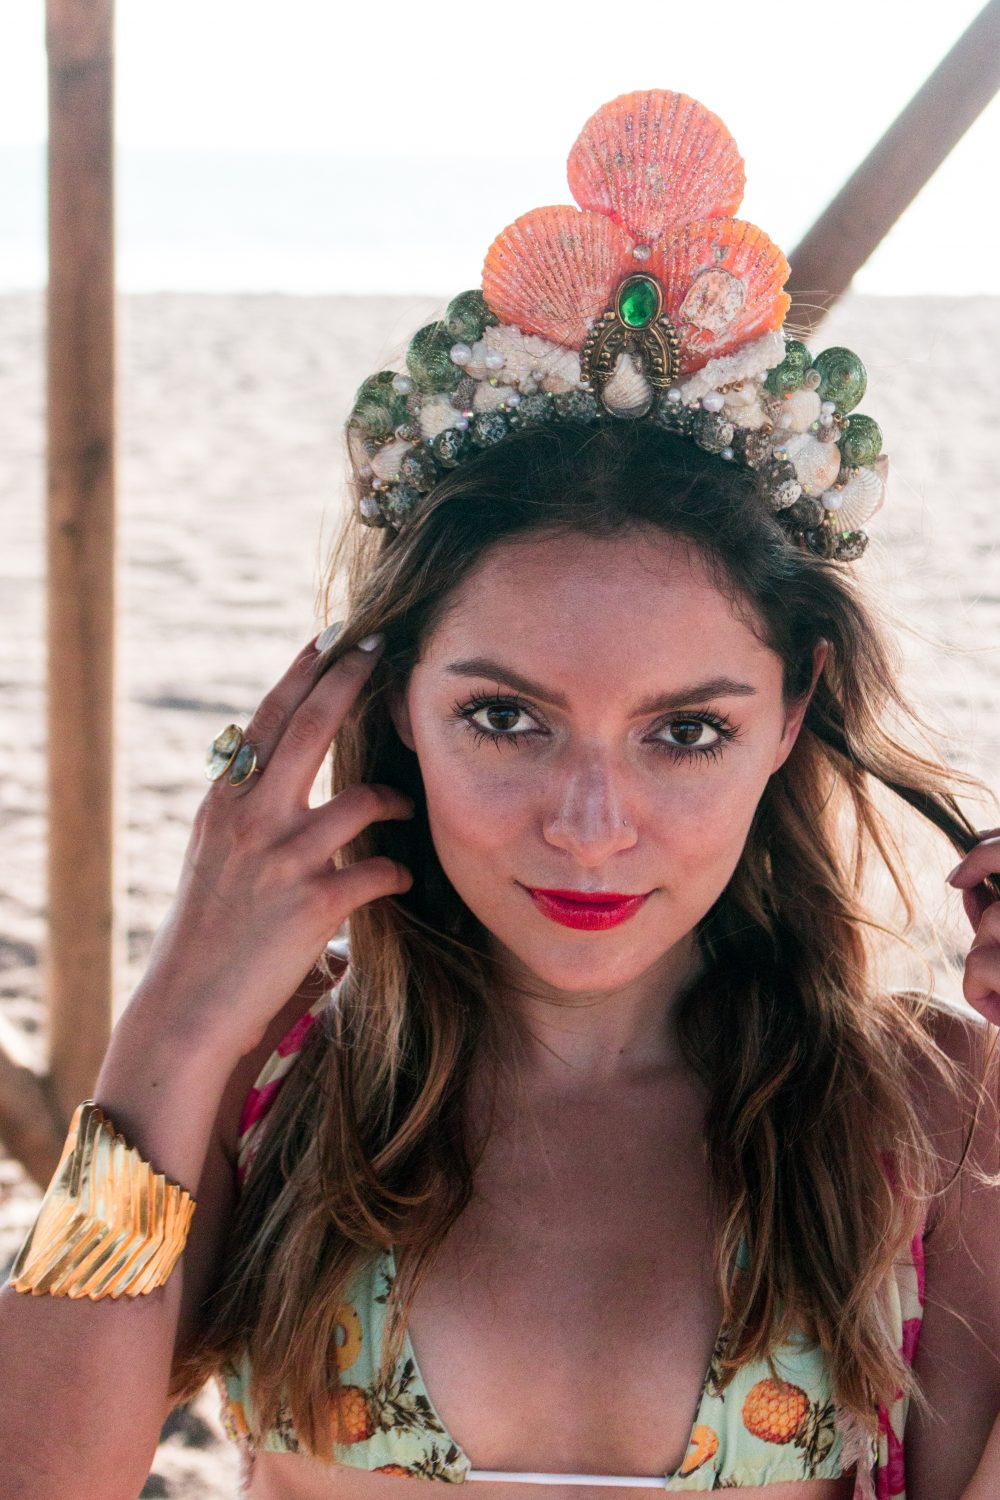 Whitney's Wonderland Costa Rican and UK Top Fashion Blogger wears Madre Perla mermaid shell crown